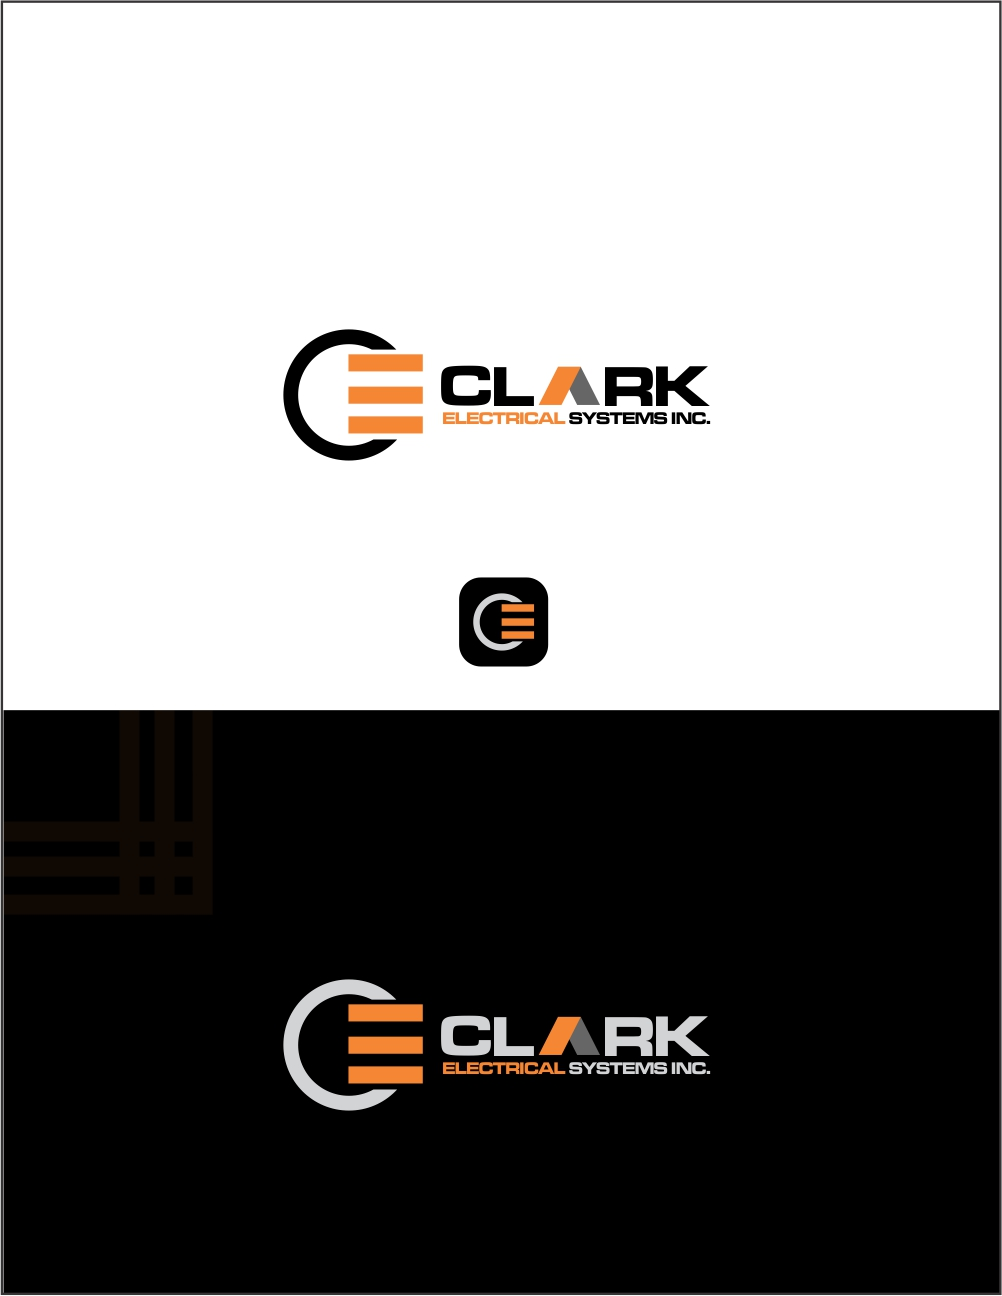 Logo Design by ian69 - Entry No. 170 in the Logo Design Contest Artistic Logo Design for Clark Electrical Systems Inc..